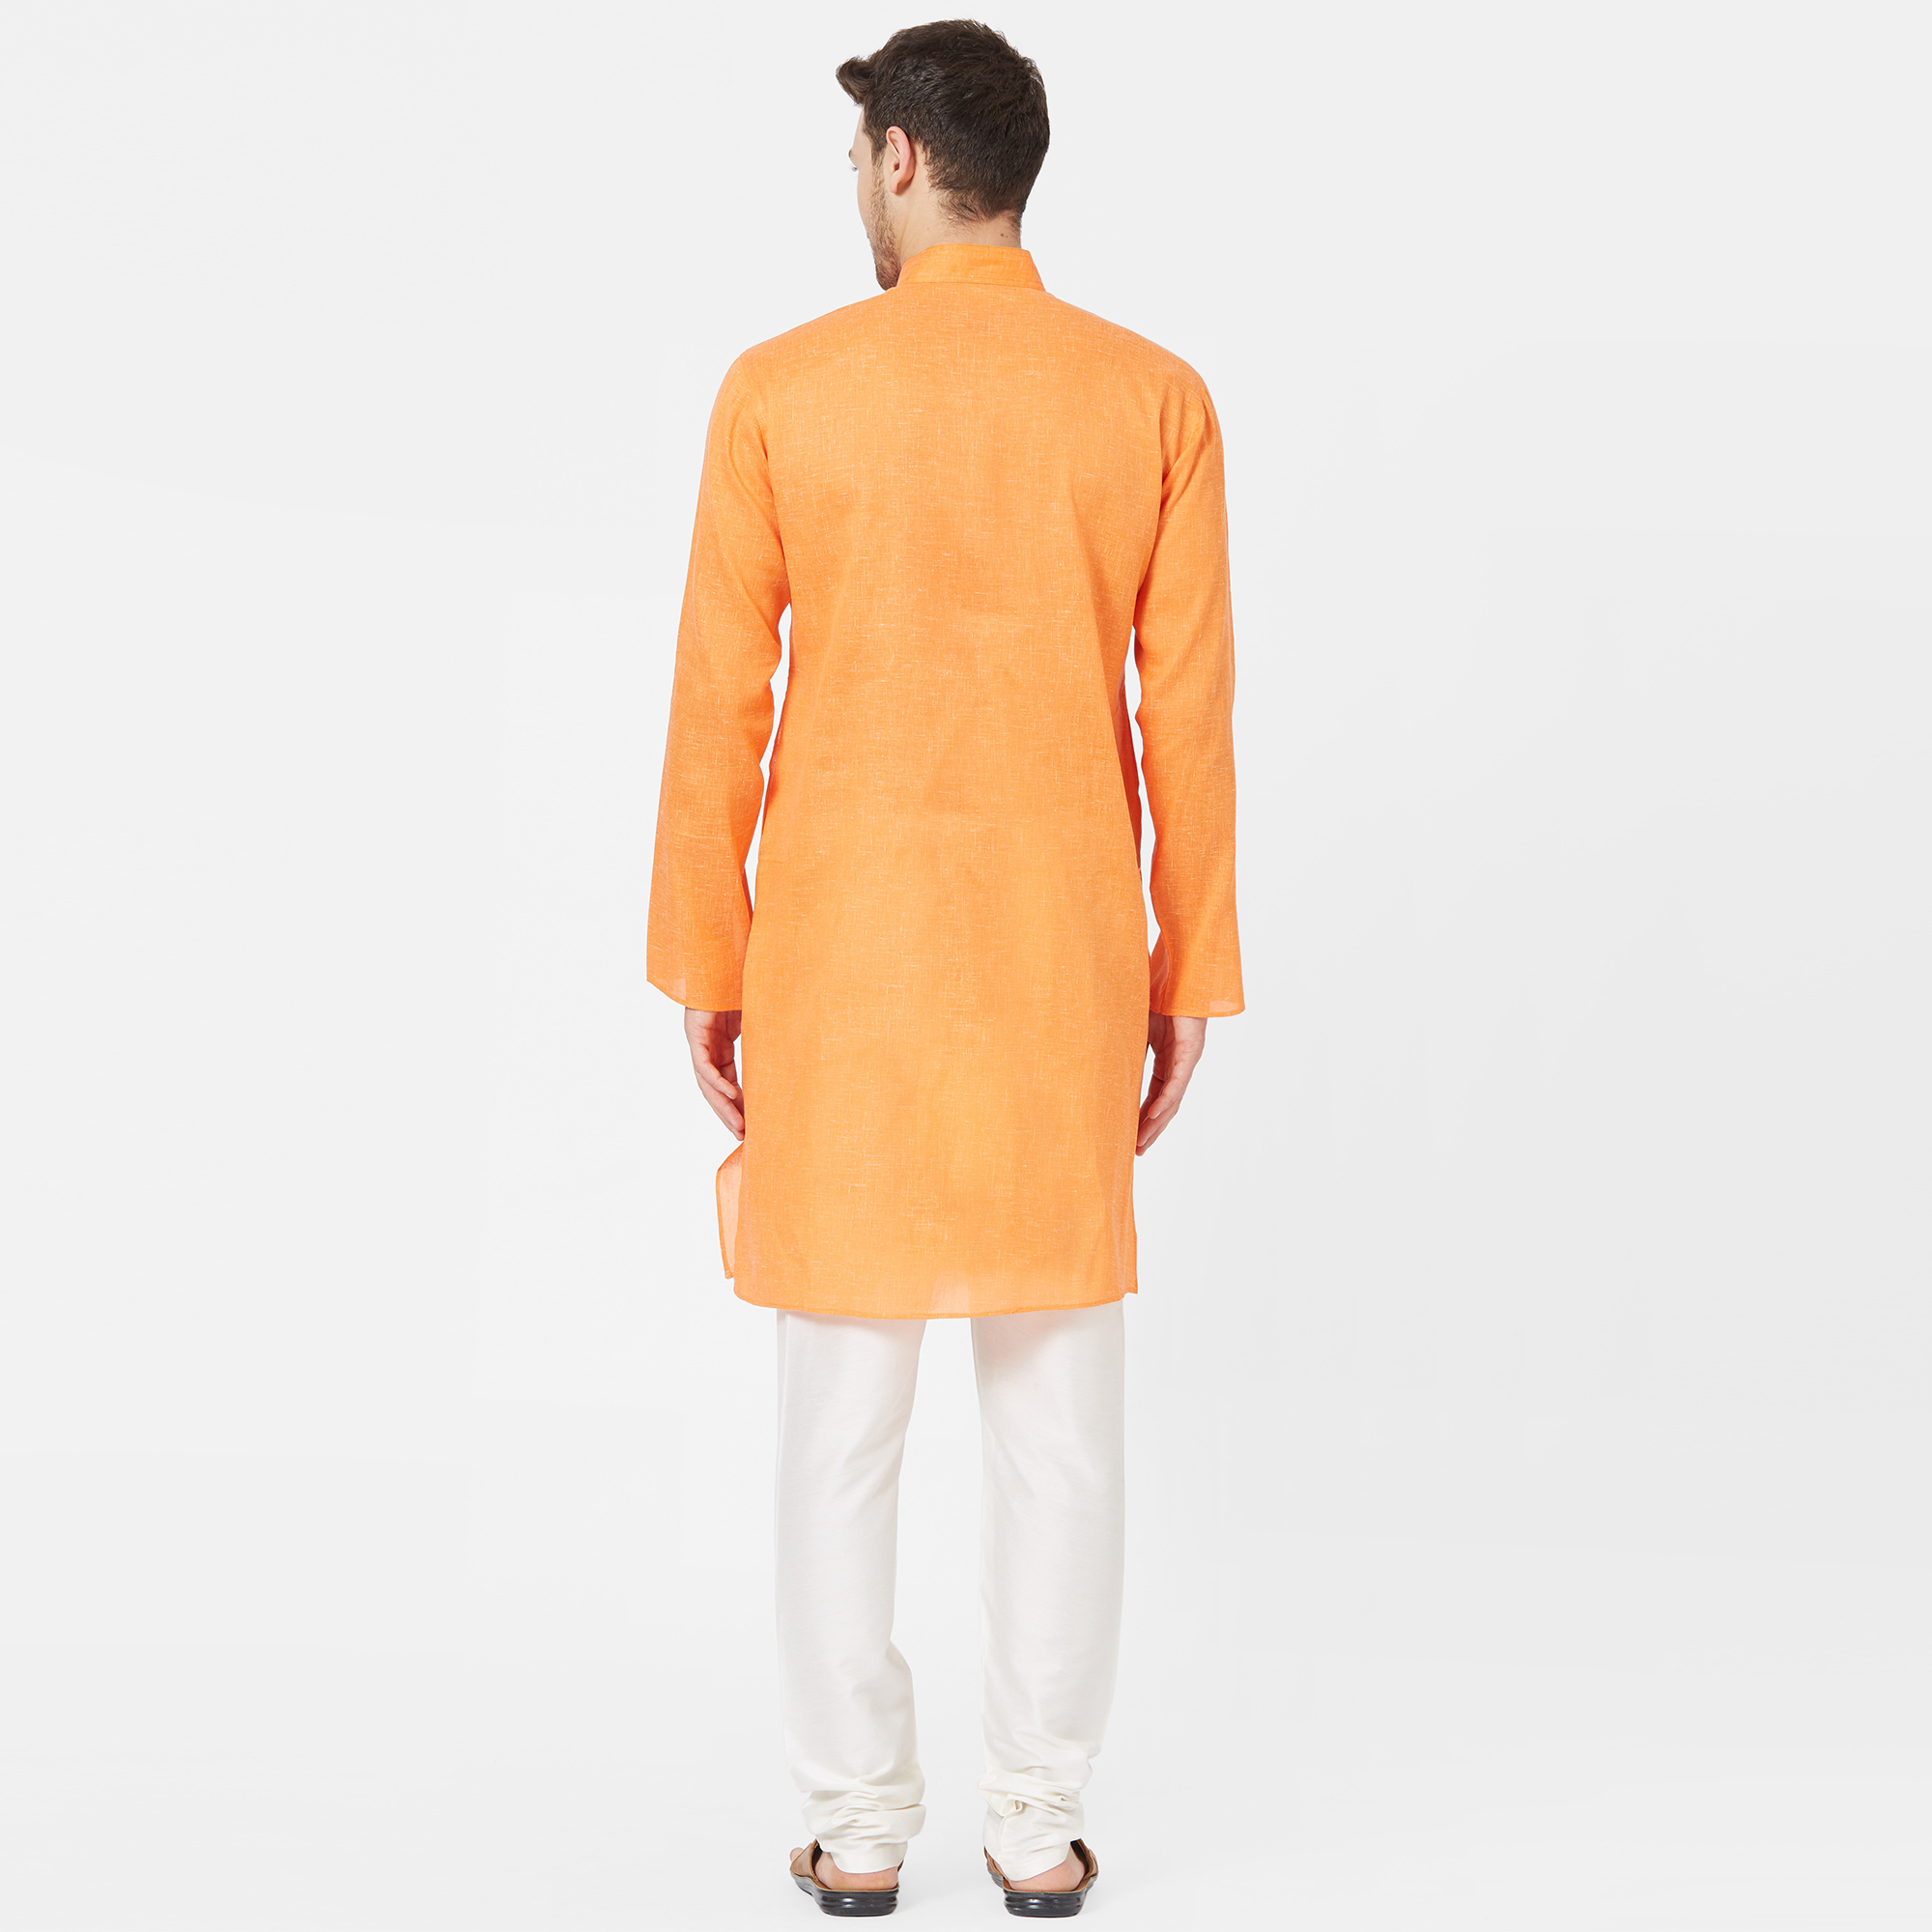 Entrancing Light Orange Colored Festive Wear Cotton Kurta